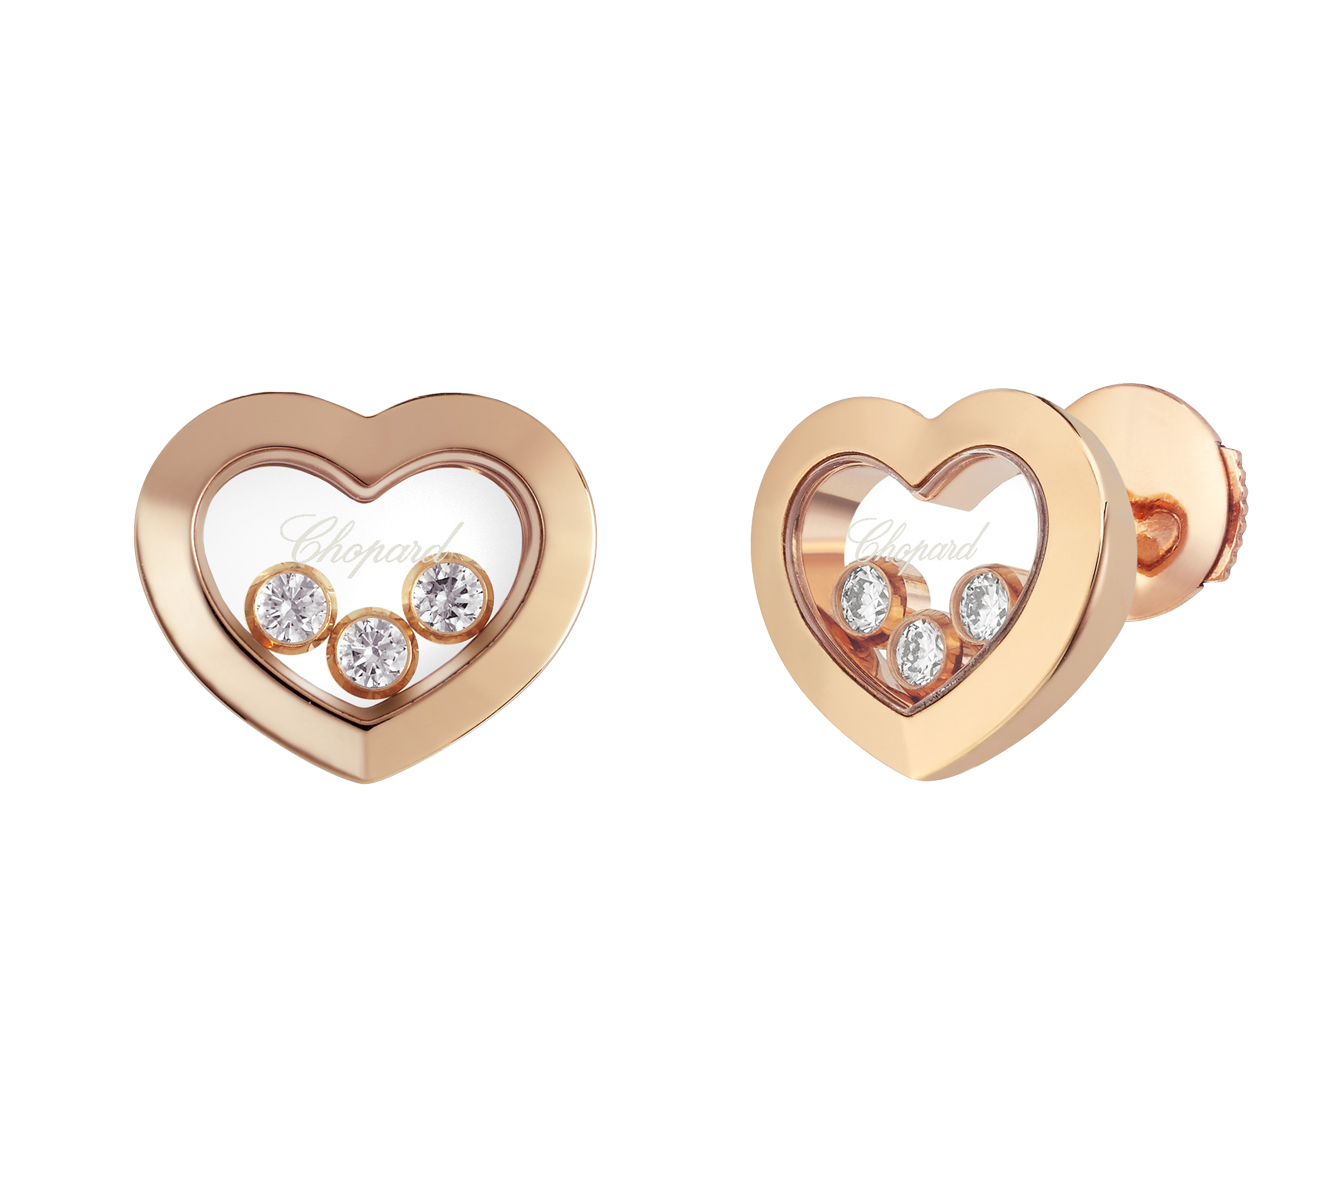 Серьги Icons Heart Chopard Happy Diamonds 83A611-5001 - фото 2 – Mercury